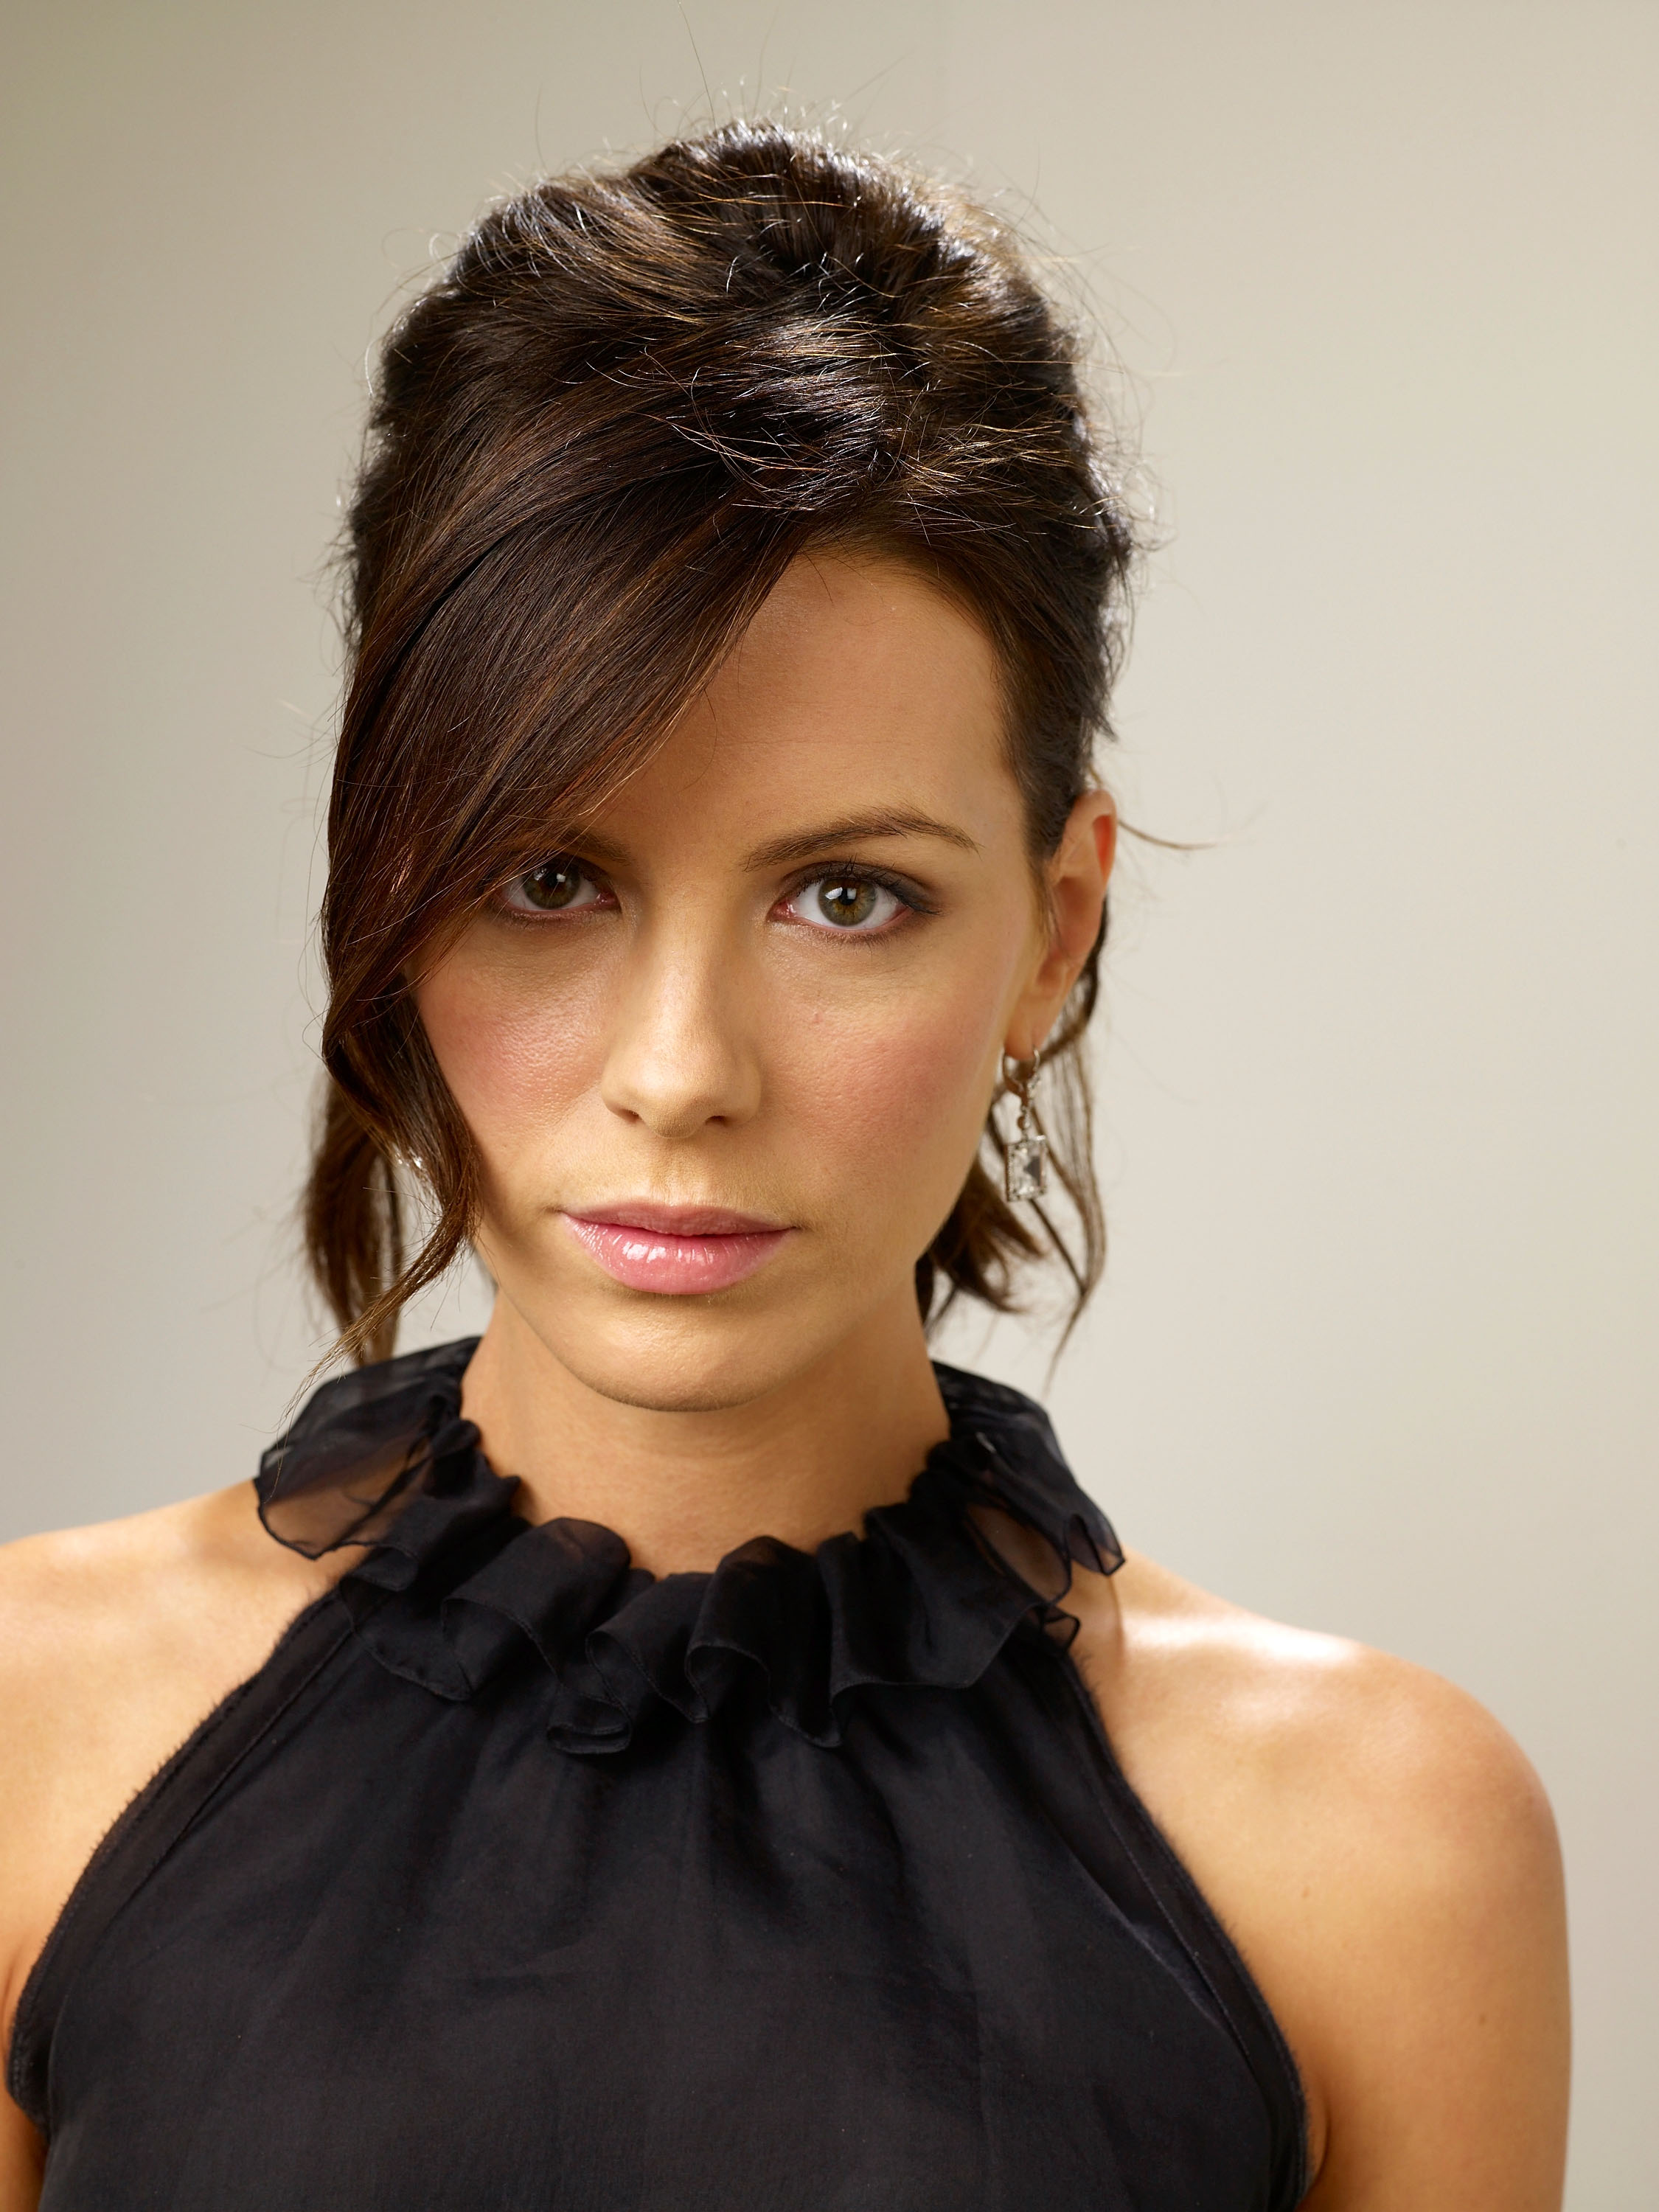 83897_Celebutopia-Kate_Beckinsale-Nothing_But_The_Truth_TIFF_2008_Portrait_Session-07_122_368lo.jpg